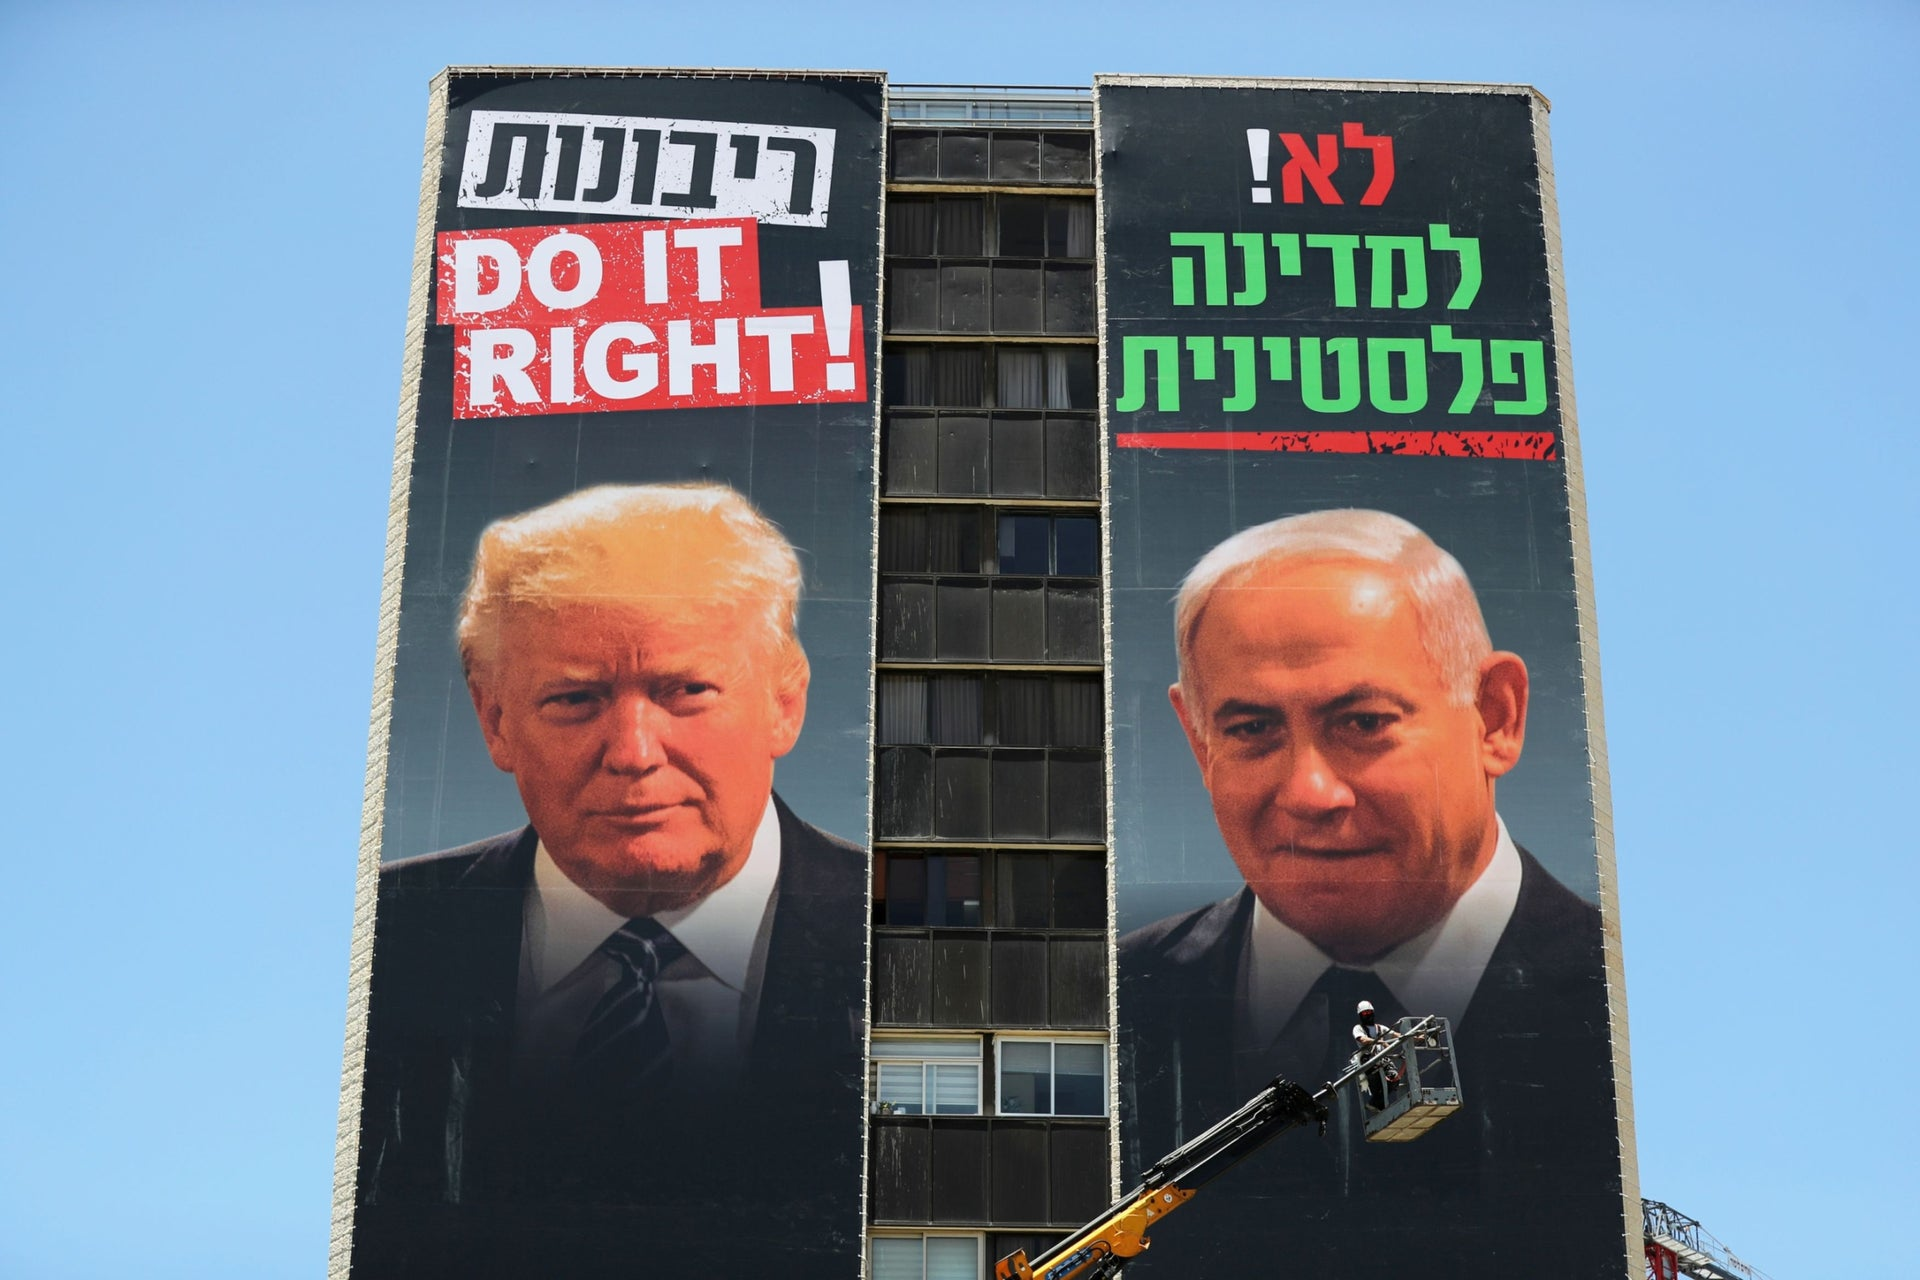 """Banners depicting U.S. President Donald Trump and Prime Minister Benjamin Netanyahu, part of a new campaign by the Yesha Council of Jewish settlements bearing the words """"Sovereignty. Do it right!"""" and """"No to a Palestinian state,"""" in Jerusalem, June 10, 2020."""